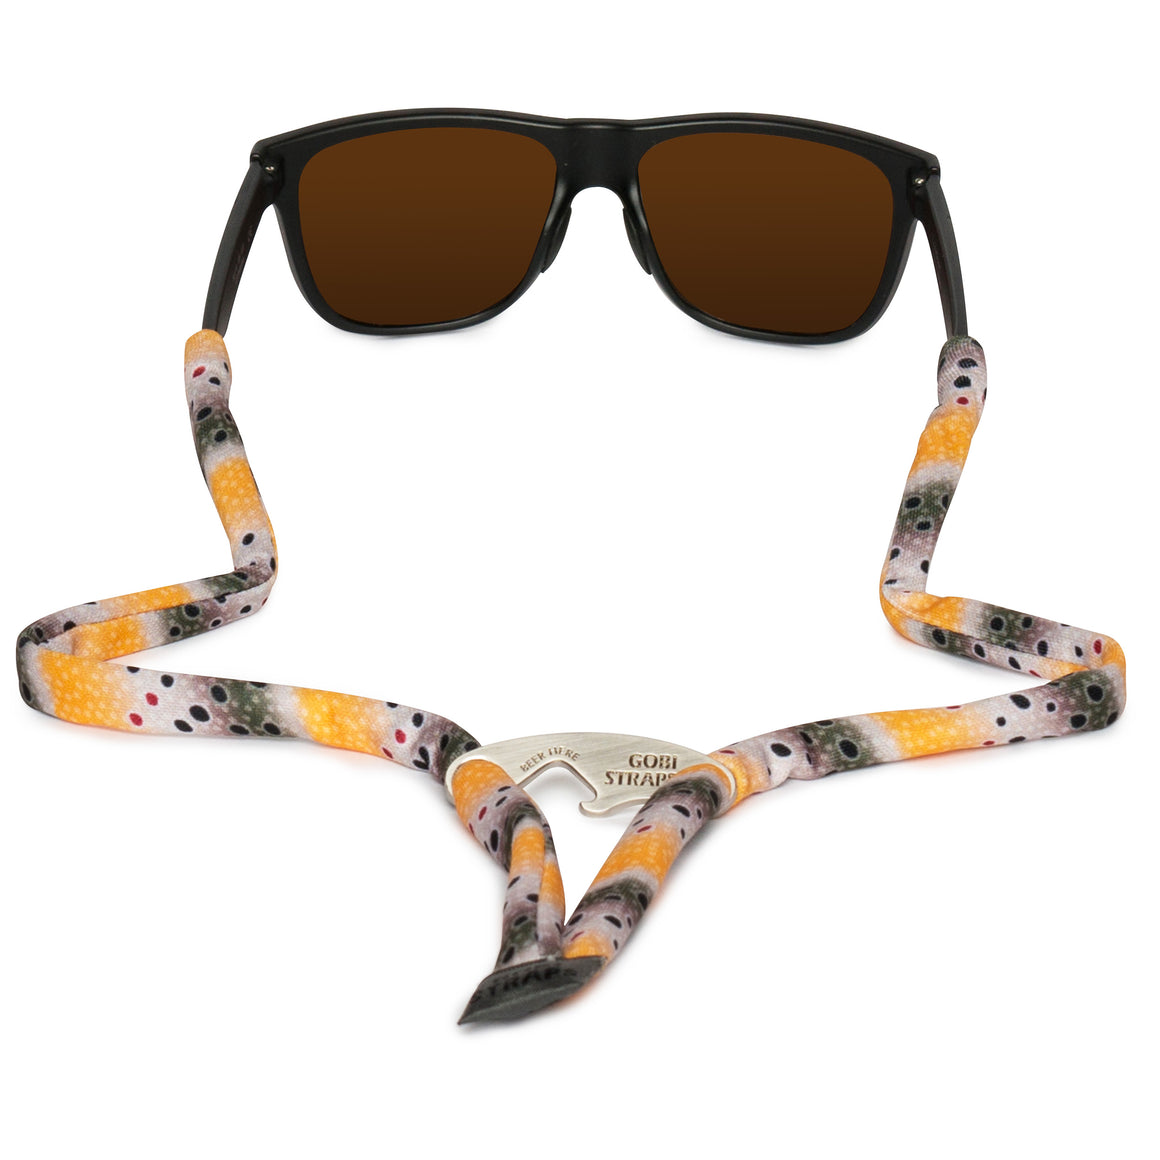 The Brown Trout Sunglass Straps